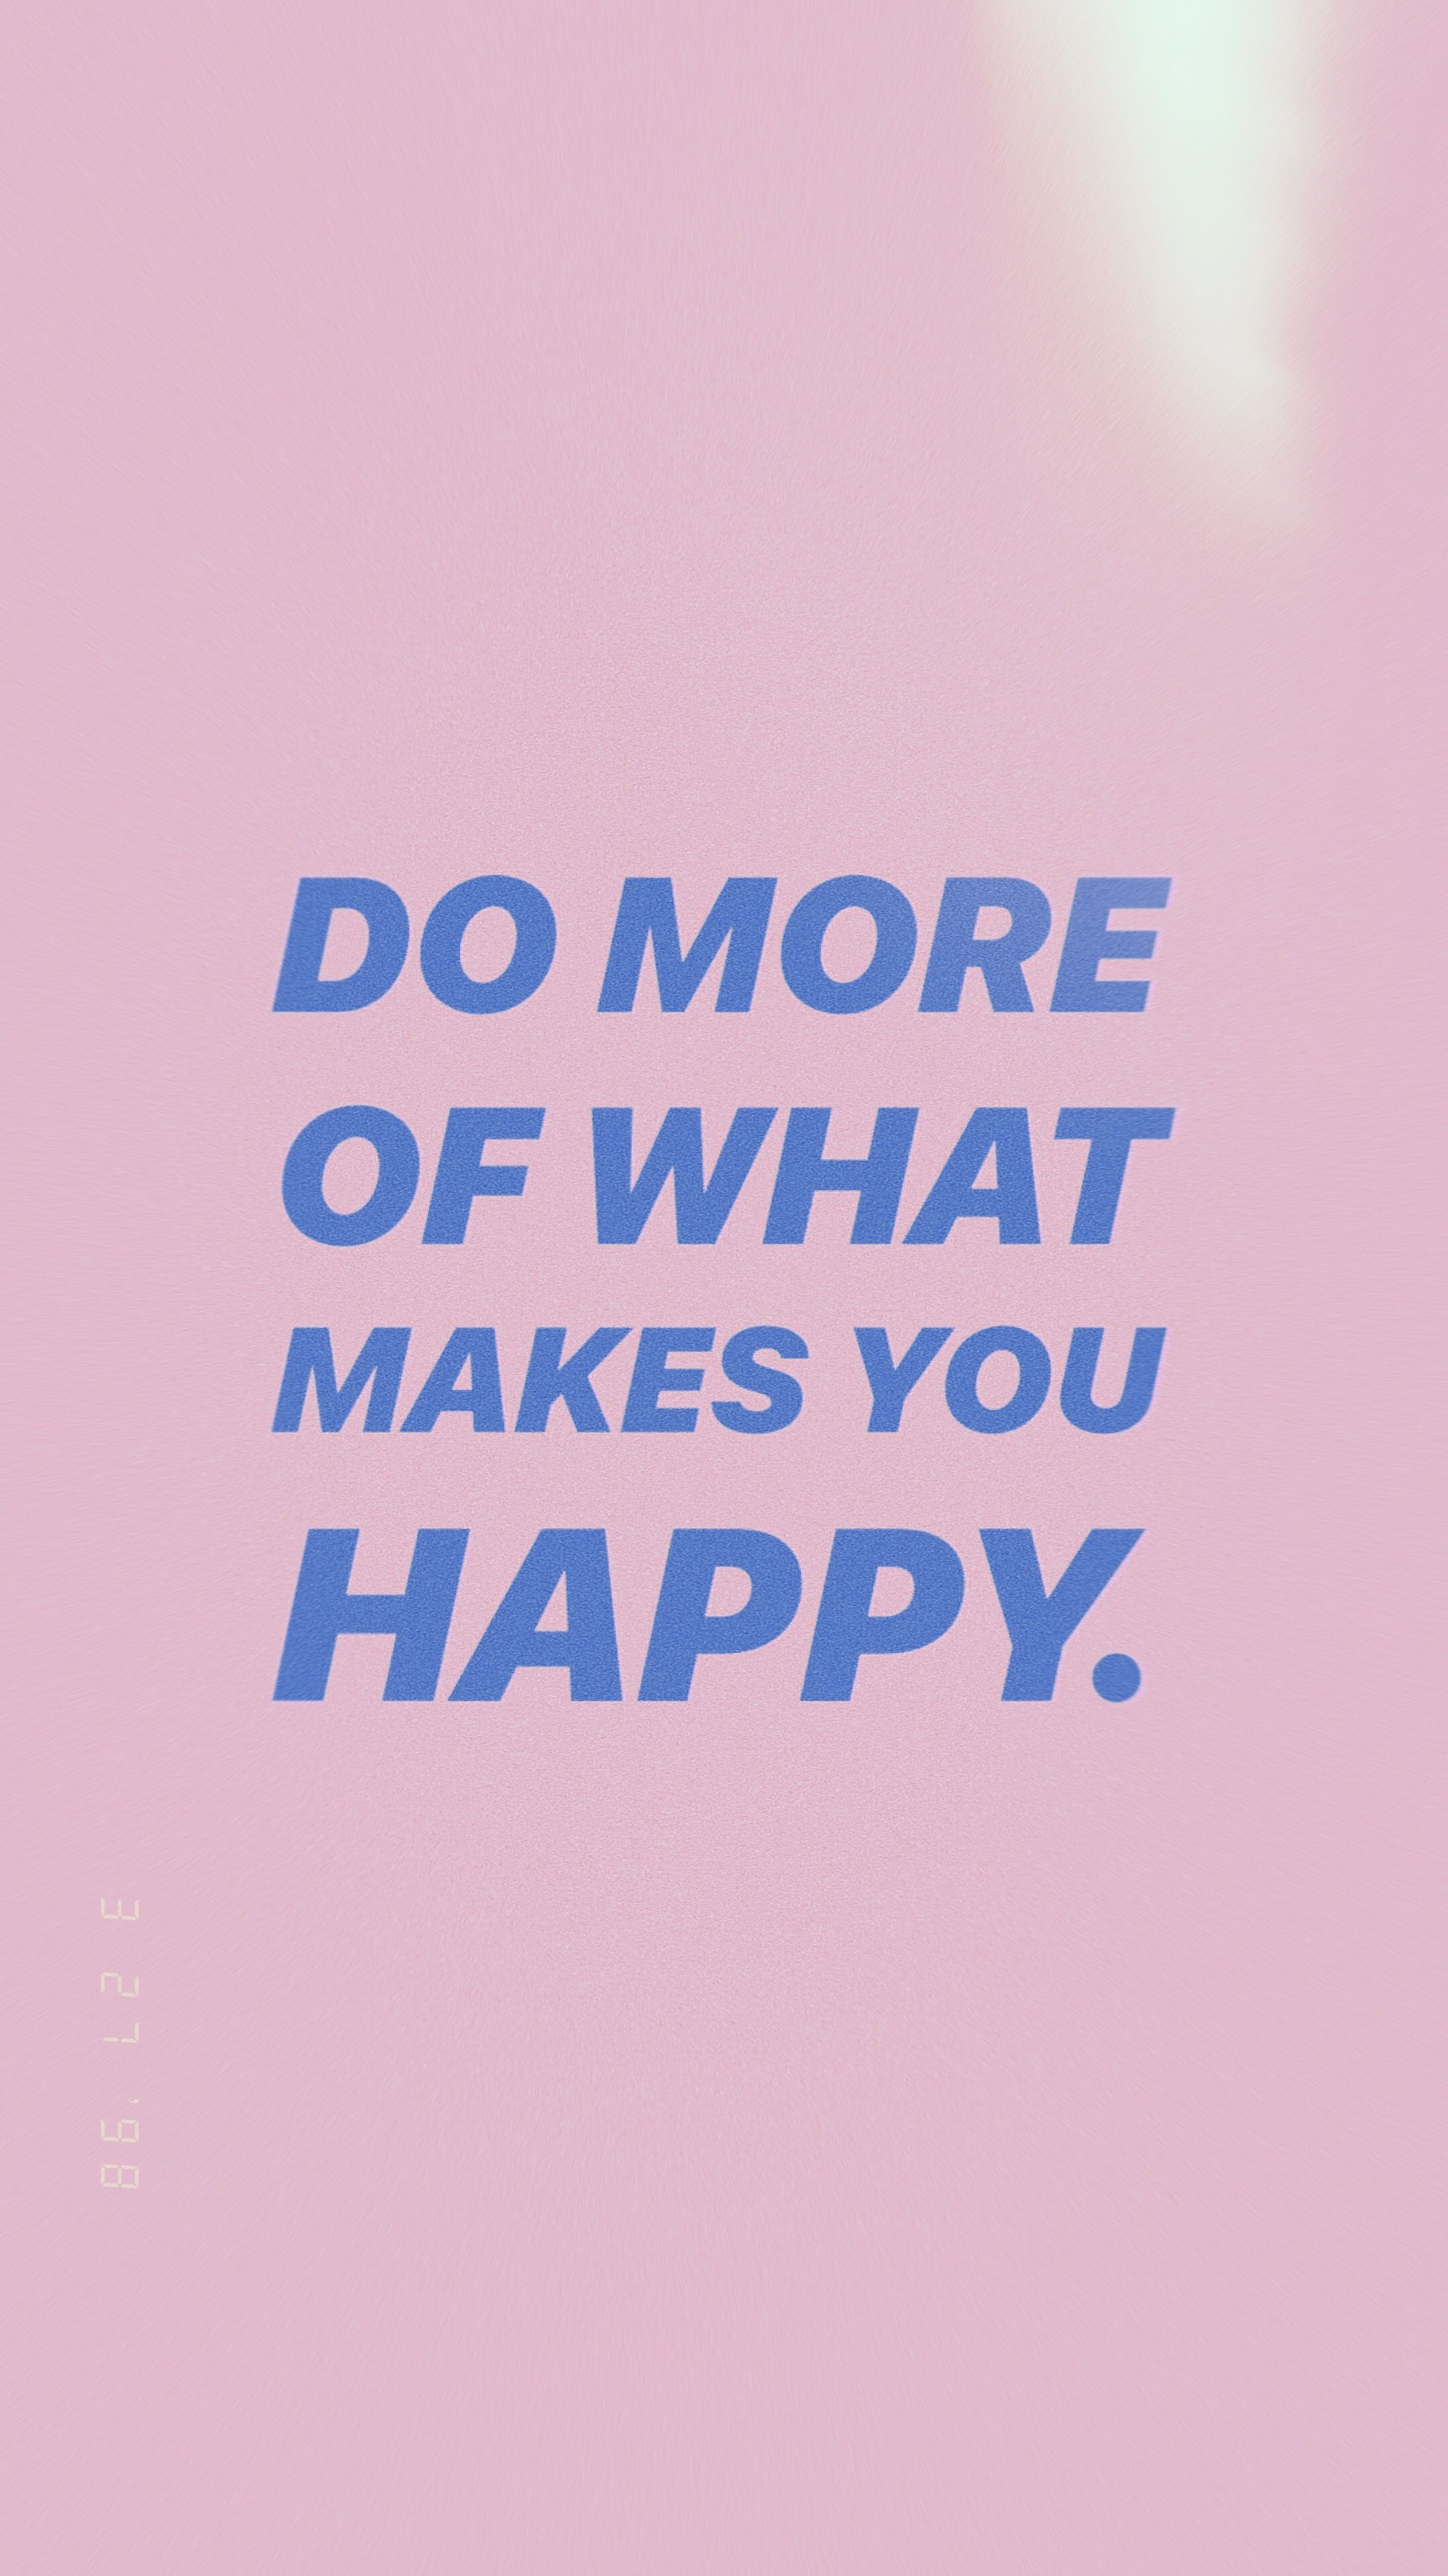 do more of what makes you happy get 5 free downloadable phone